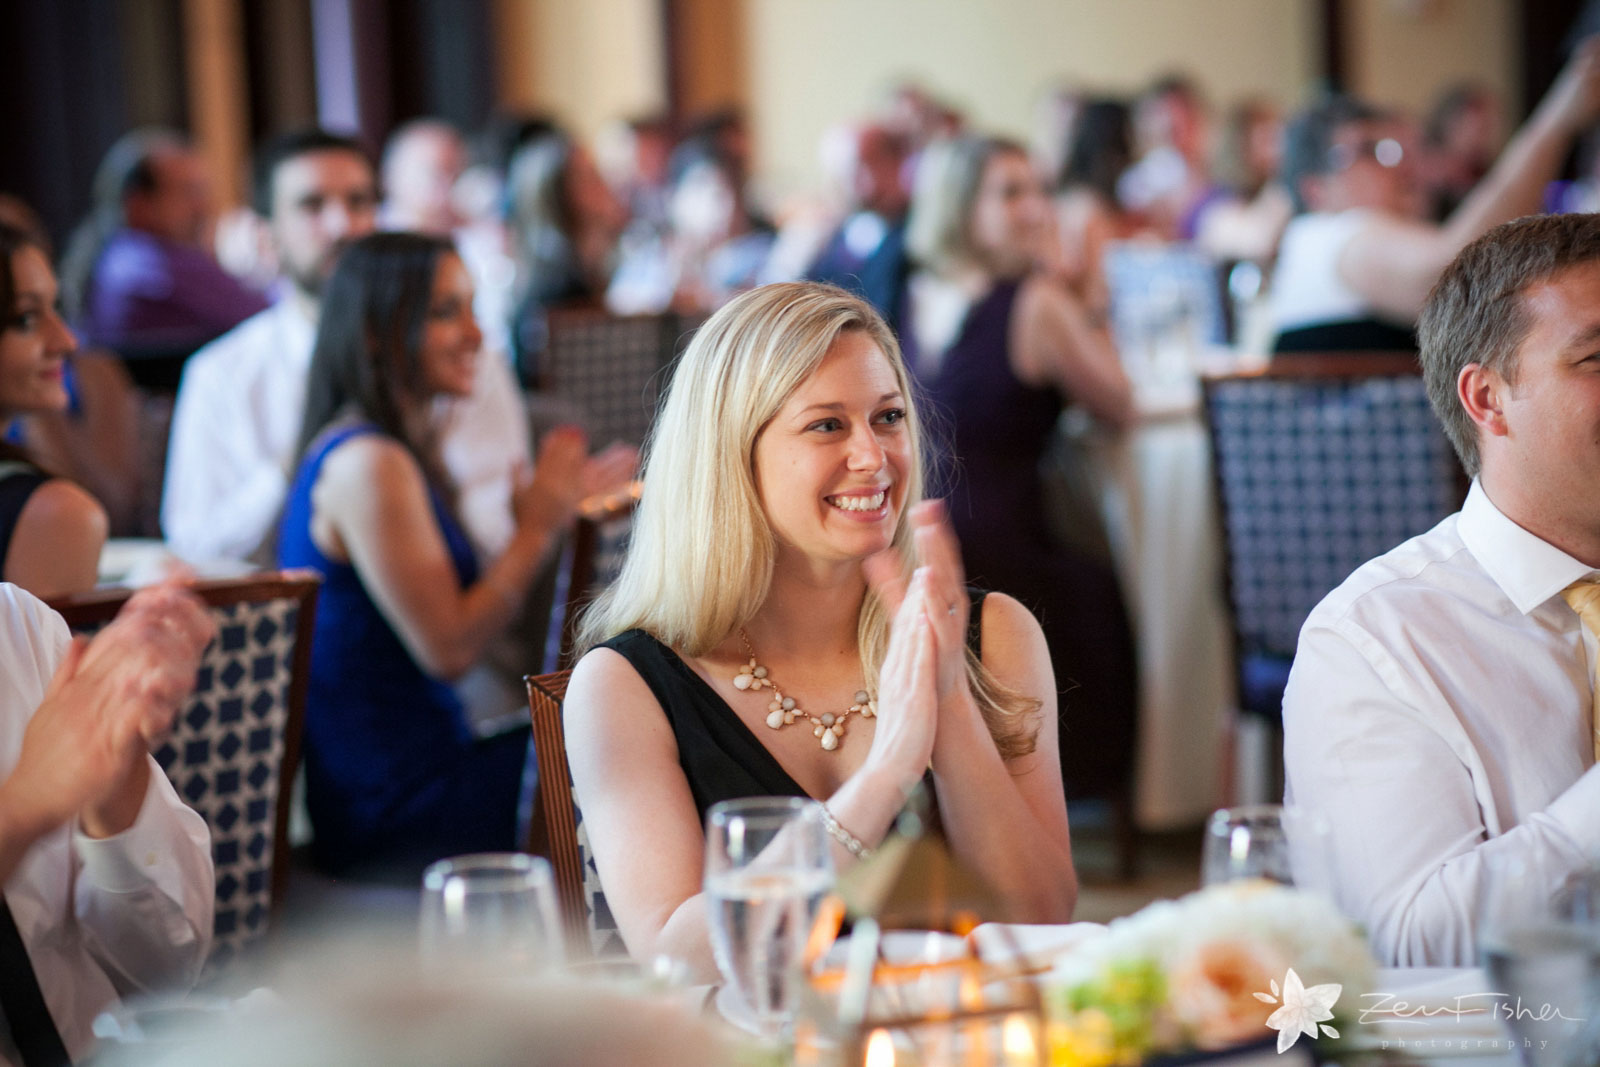 Liberty Hotel Boston wedding, Boston wedding photography, guest reactions during wedding reception